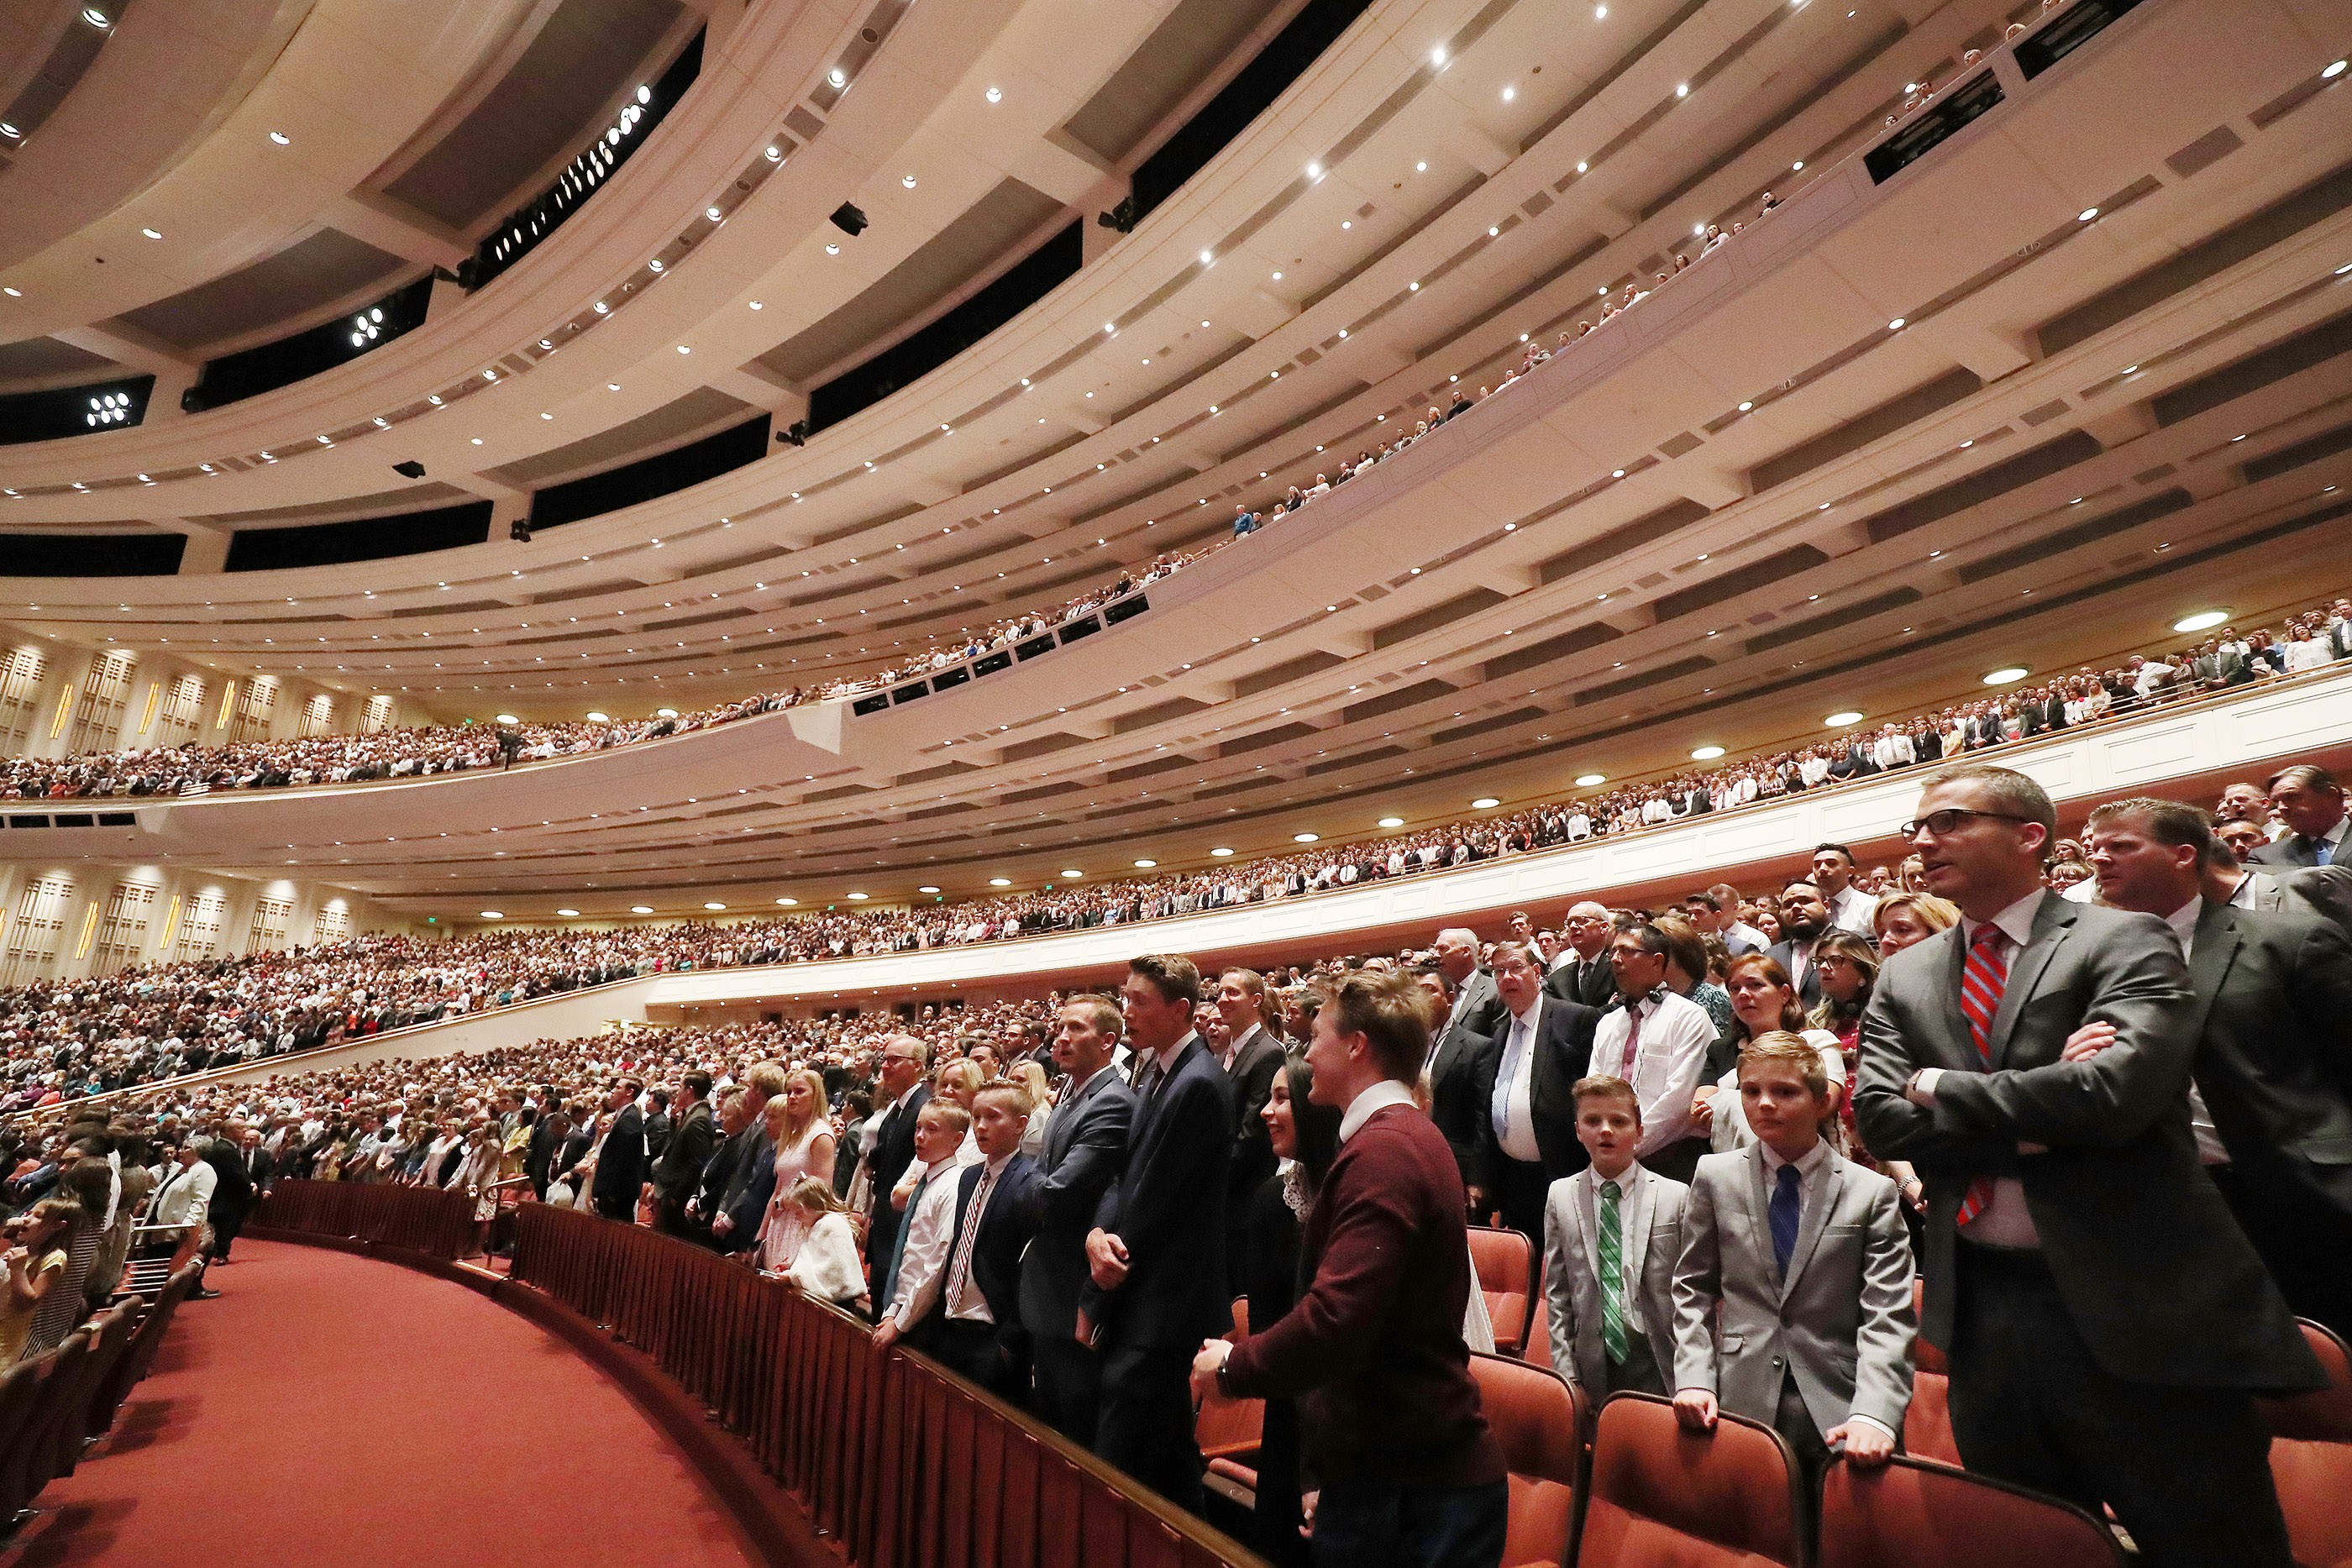 Conferencegoers sing a congregational hymn during the 189th Annual General Conference of The Church of Jesus Christ of Latter-day Saints in Salt Lake City on Sunday, April 7, 2019.